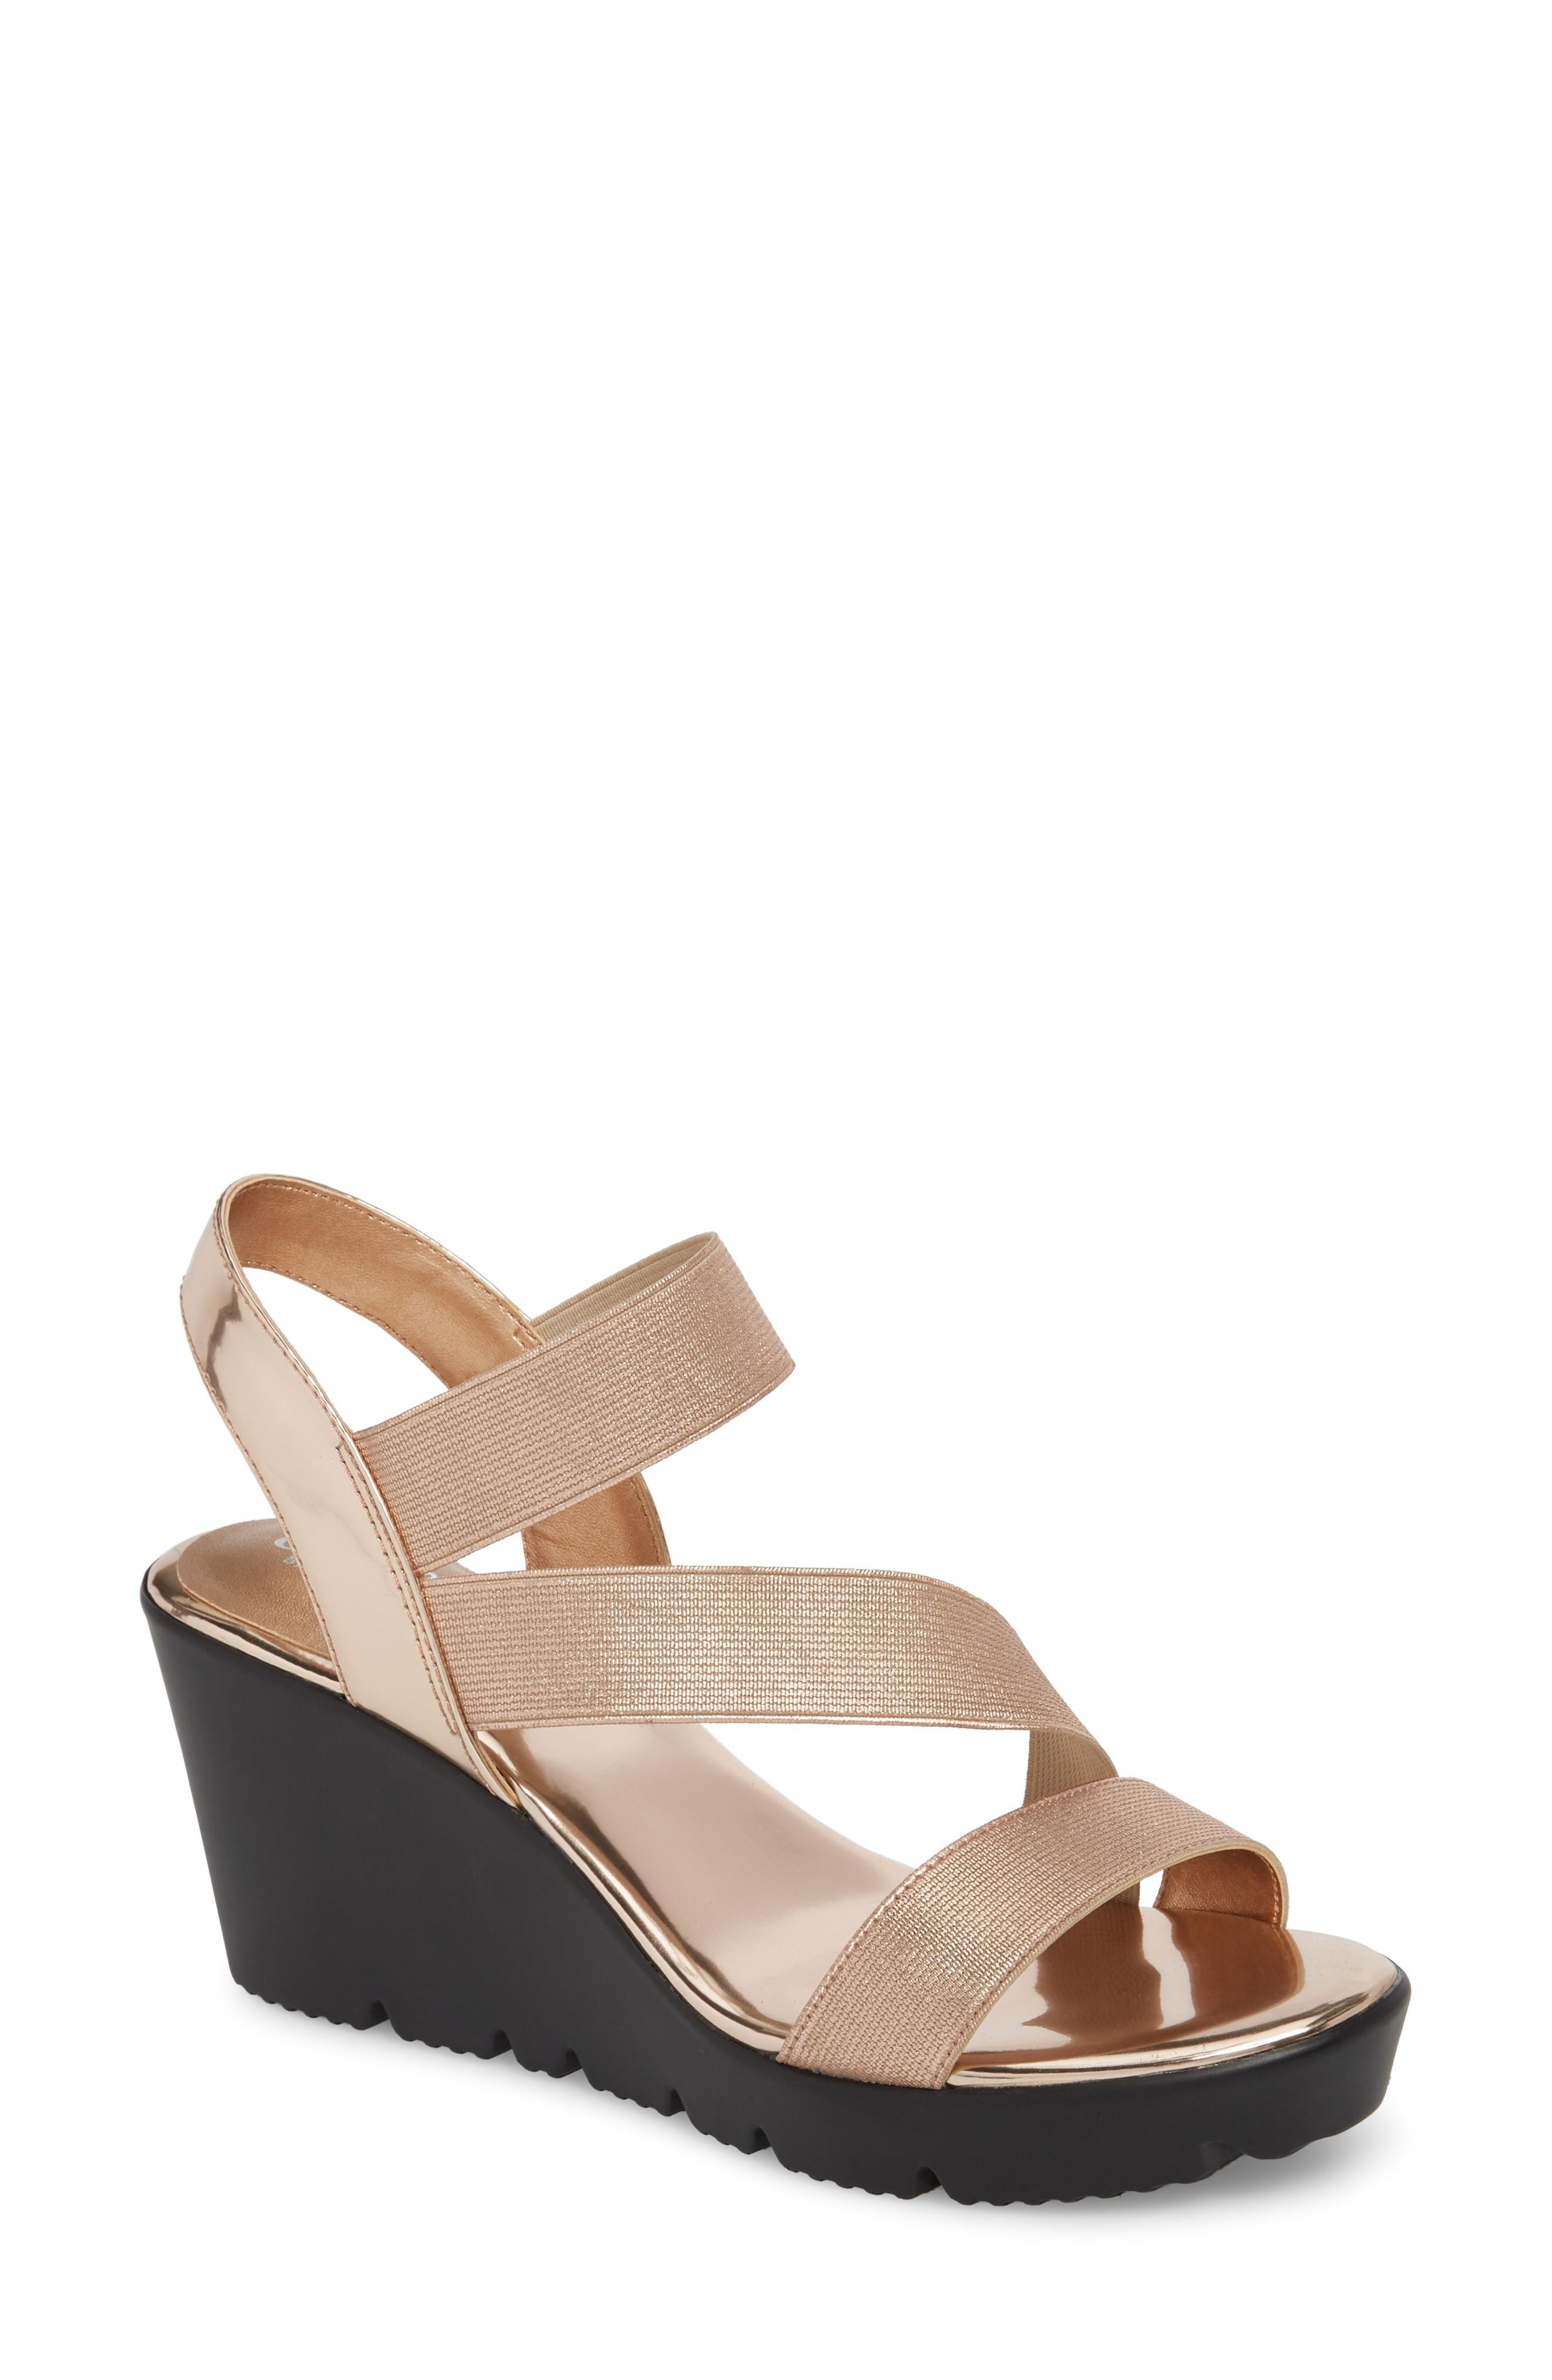 49e32ea34b76 Charles By Charles David Vent Wedge Sandal In Black Patent Leather ...